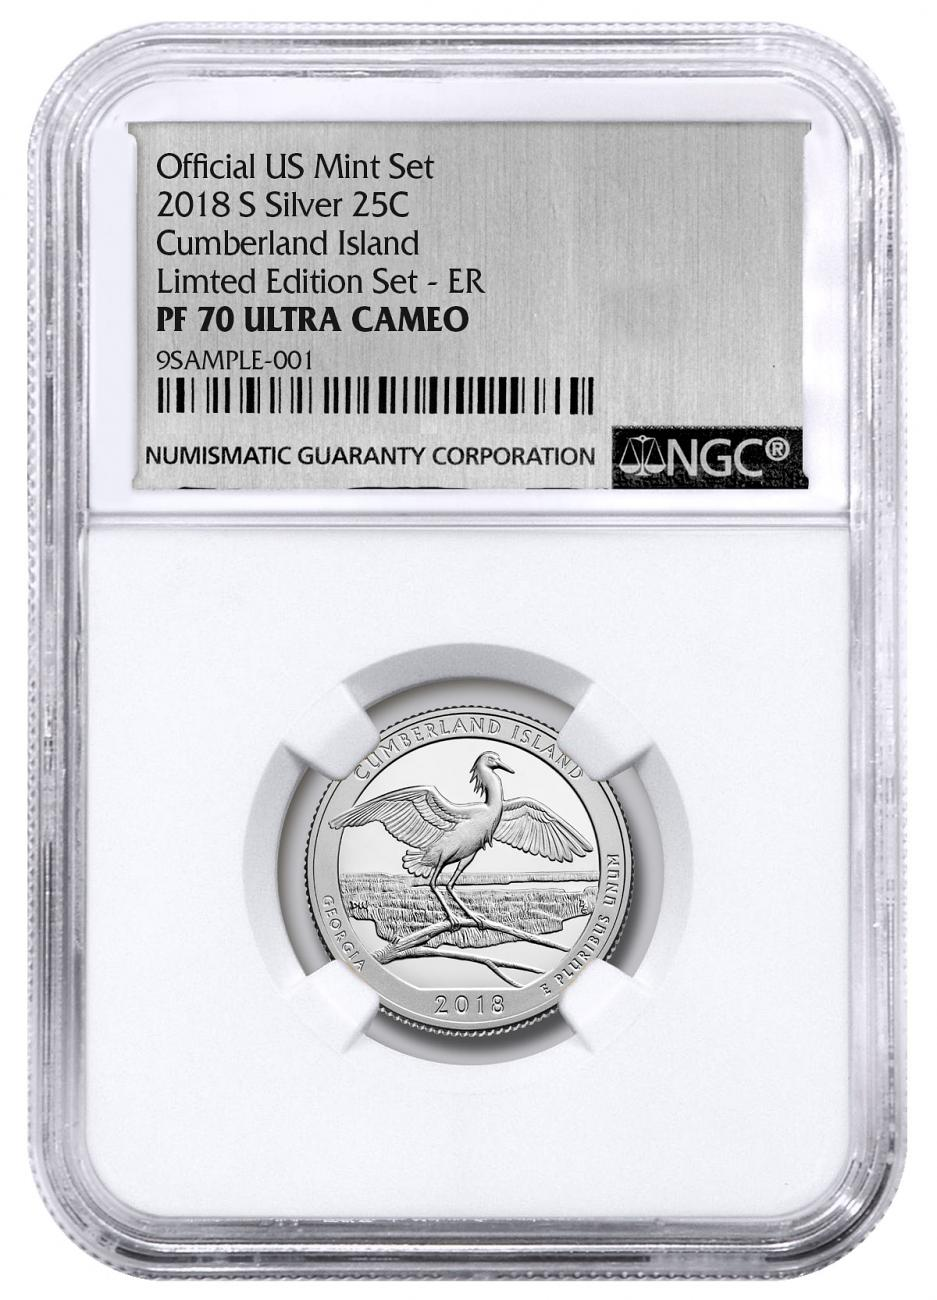 2018-S Silver Cumberland Island Proof America the Beautiful Quarter From Limited Edition Silver Proof Set NGC PF70 UC ER Silver Foil Label